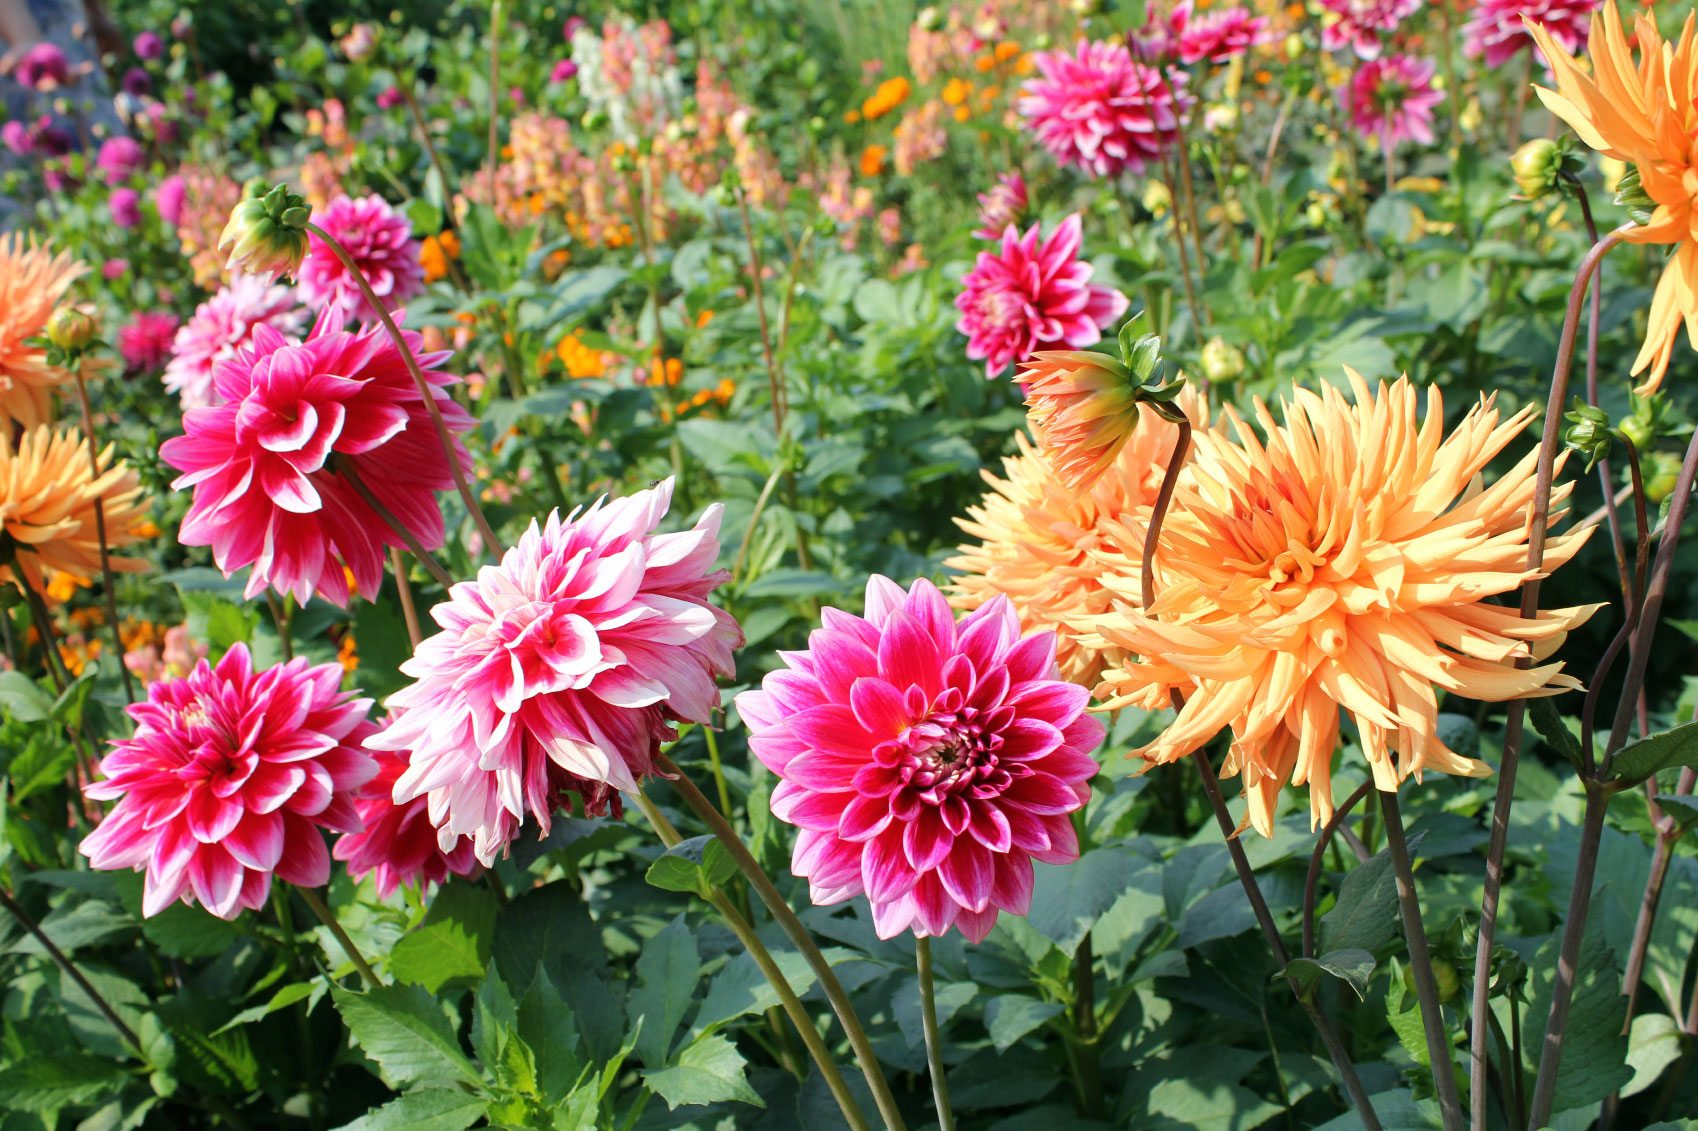 Dahlia growing tips caring for dahlia plants in the garden for Flowers that look like dahlias